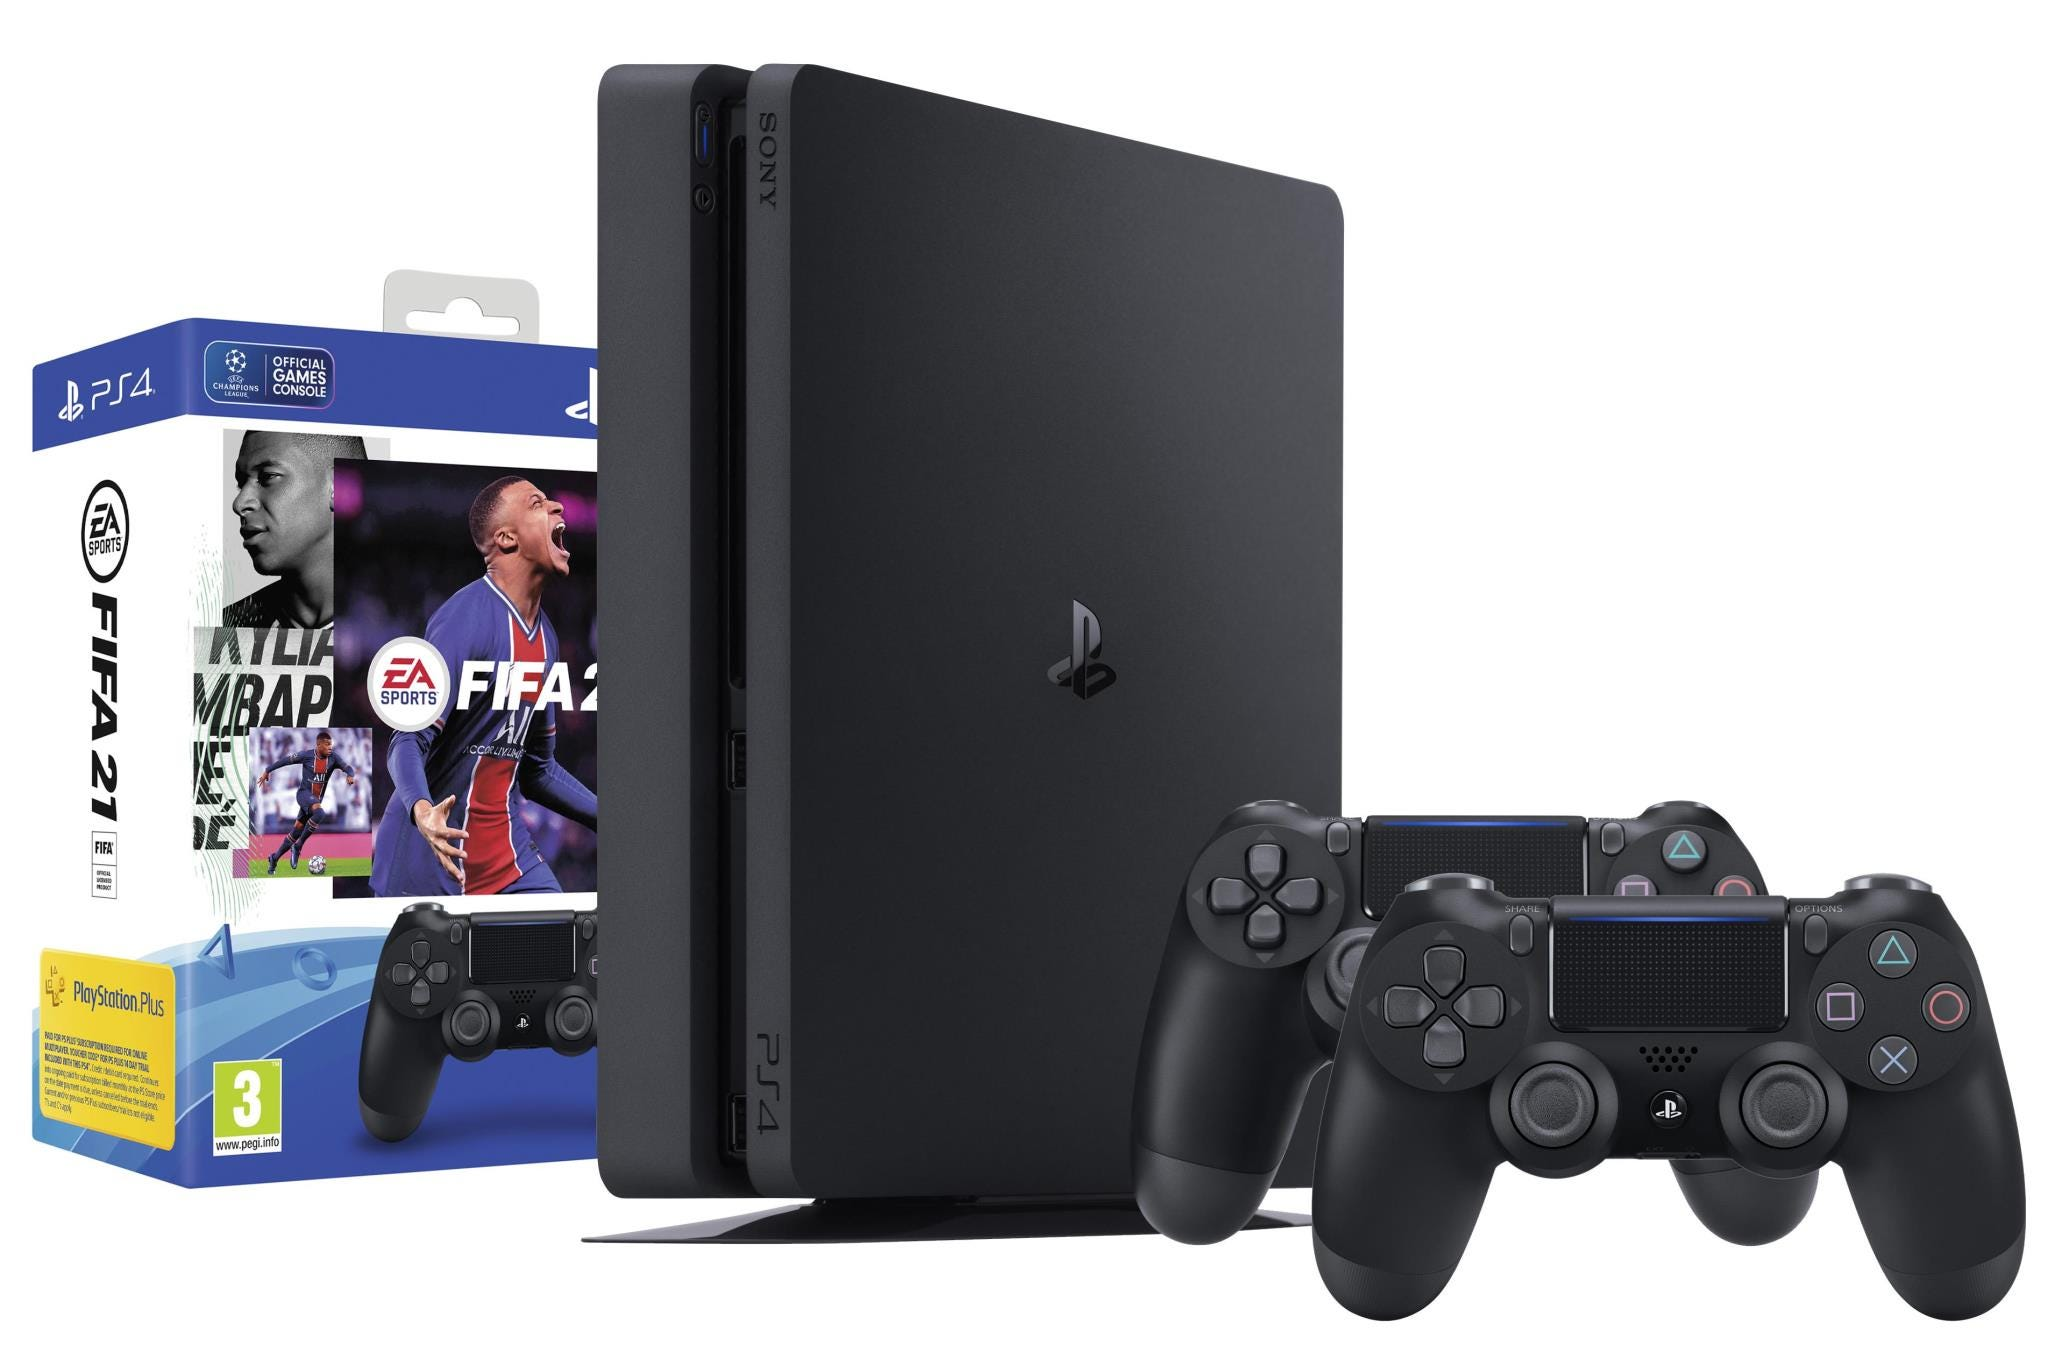 Sony PlayStation 4 500GB Black Console Bundle with Additional DualShock Controller & FIFA 2021 Digital Download Game